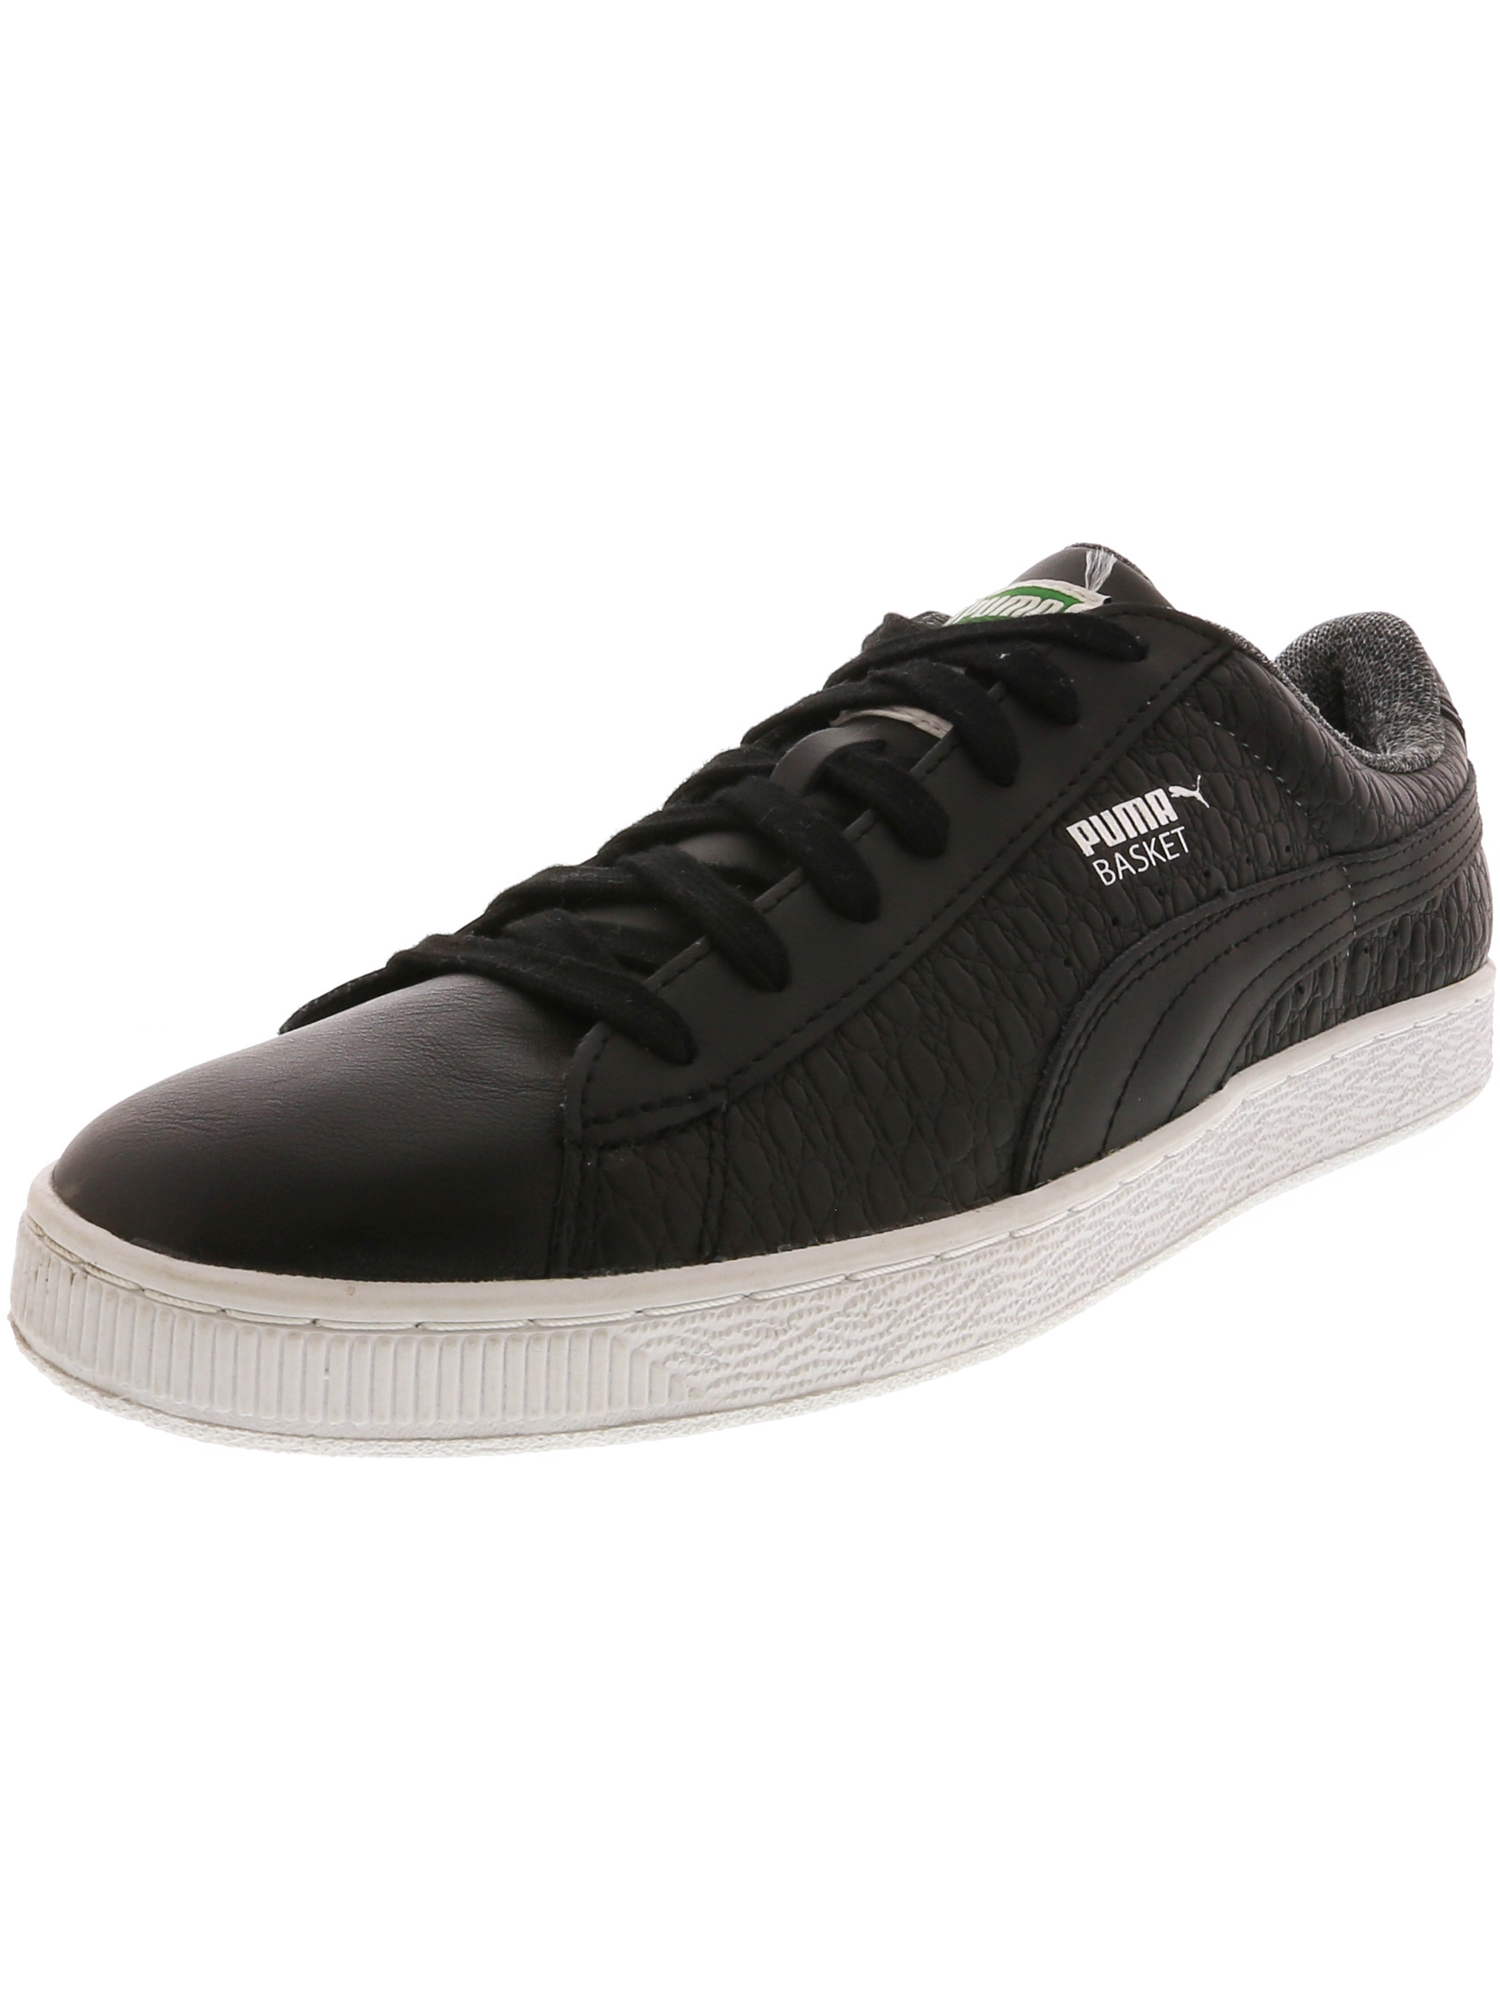 Puma Men's Basket Classic Textured White Ankle-High Leather Fashion Sneaker - 10.5M